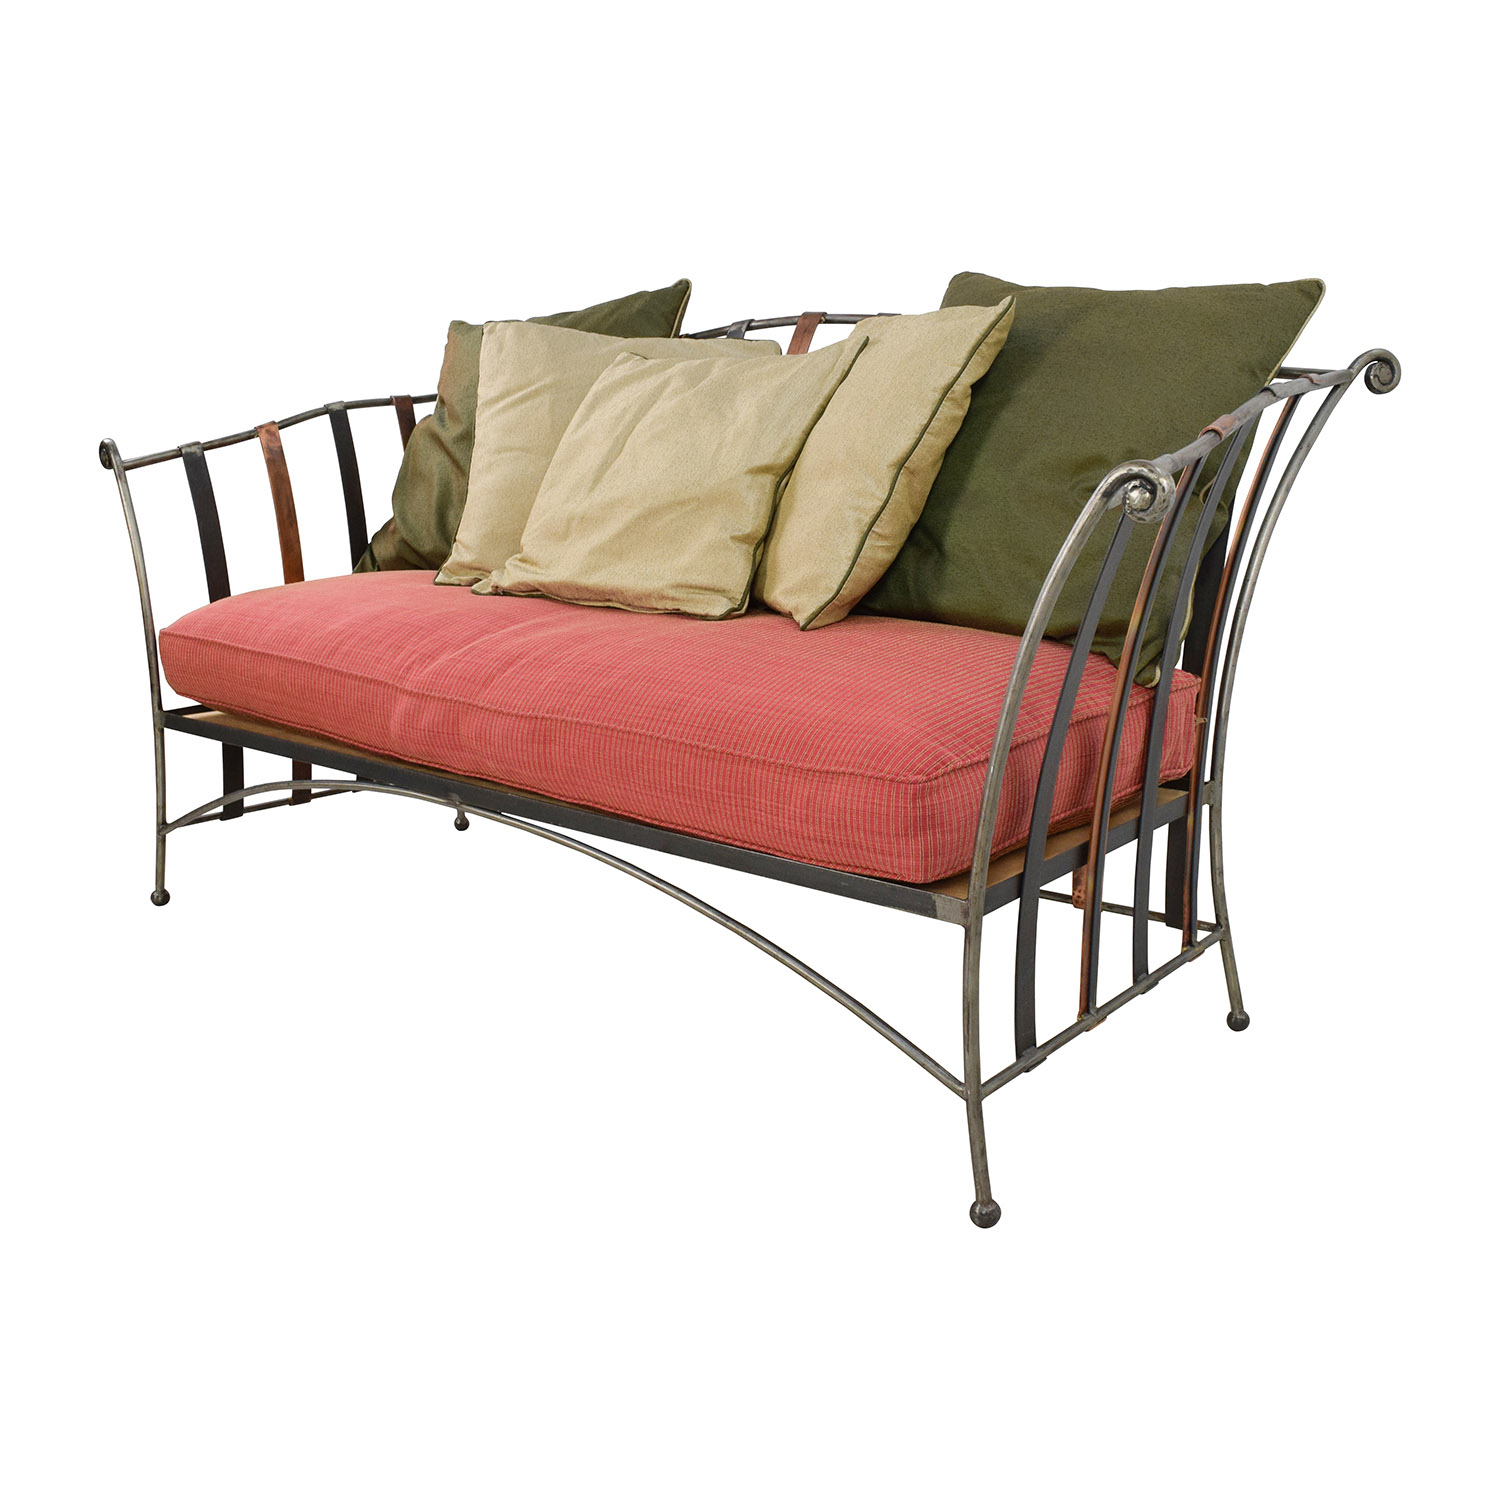 90% OFF Custom Made Wrought Iron Daybed Sofa With Silk Pillows